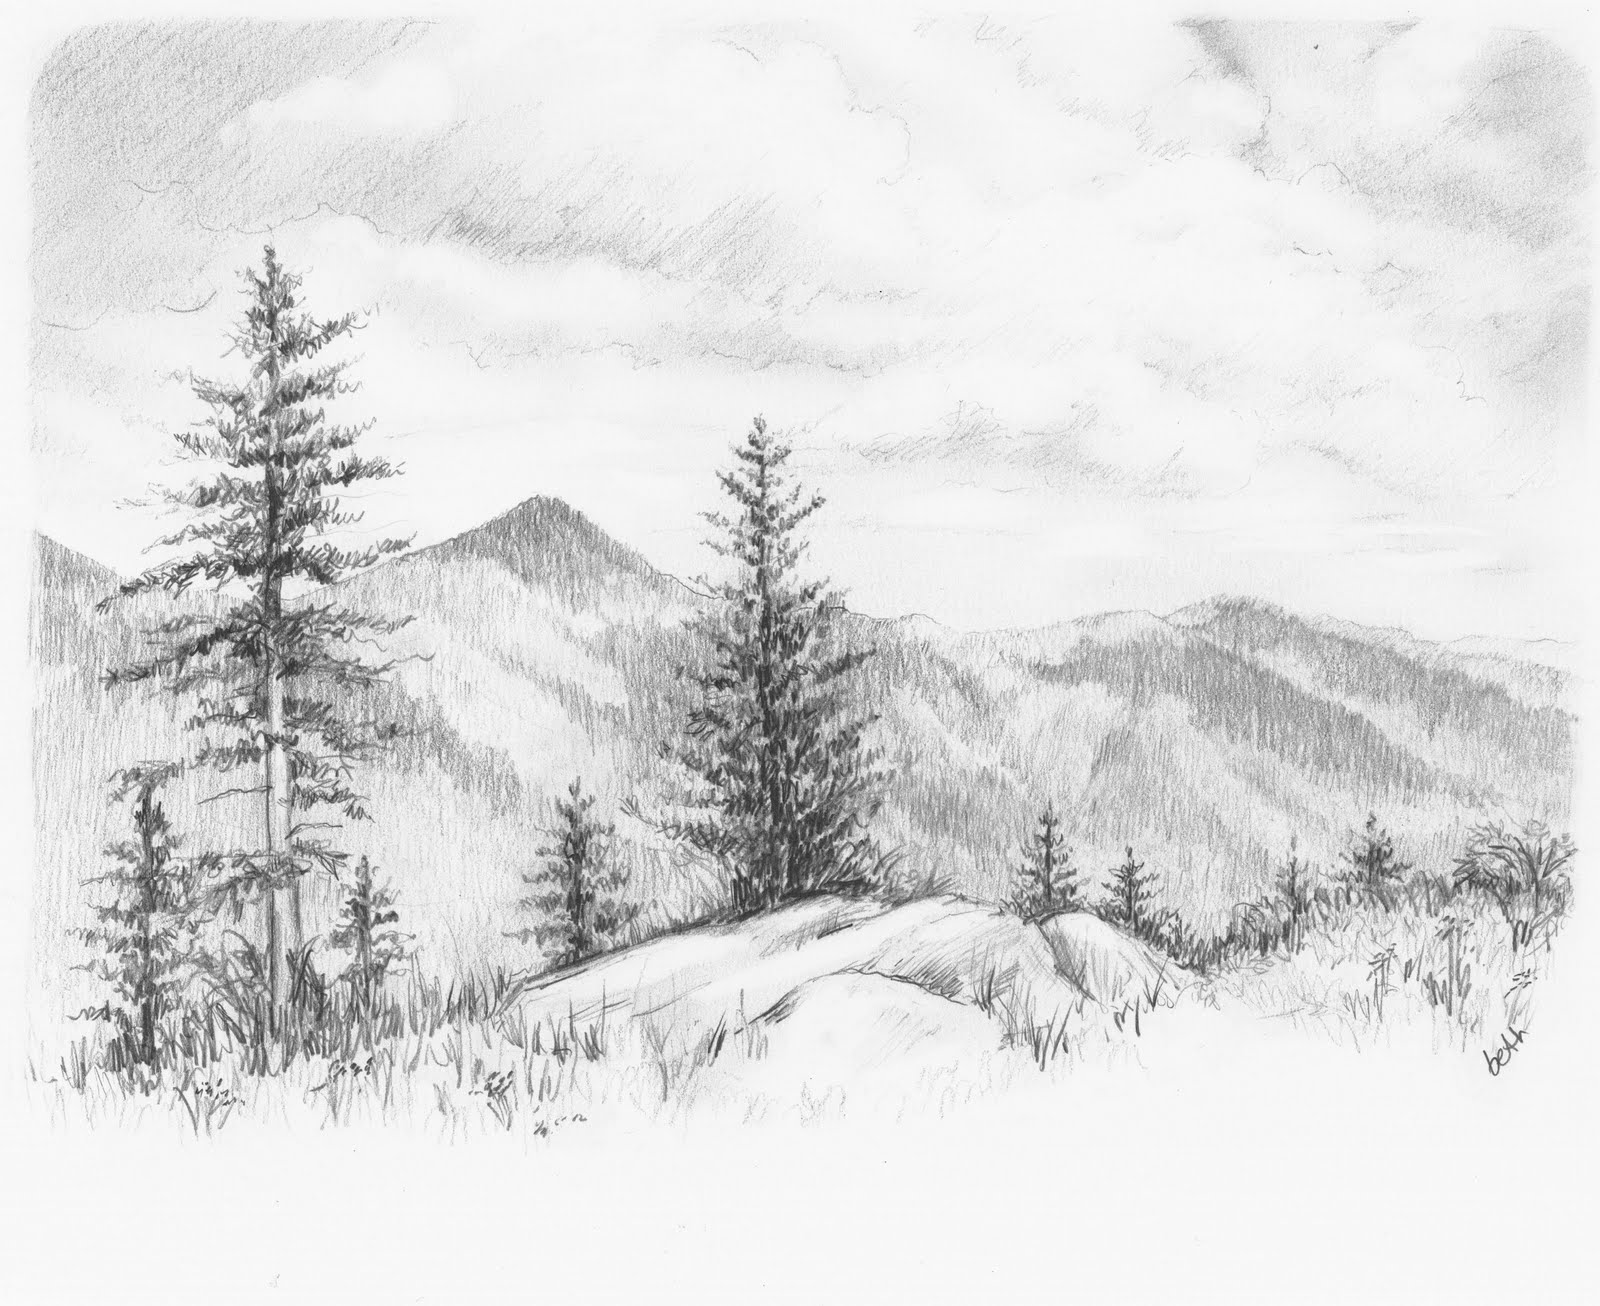 Drawn background drawing nature Of Drawings Scenes of Pencil